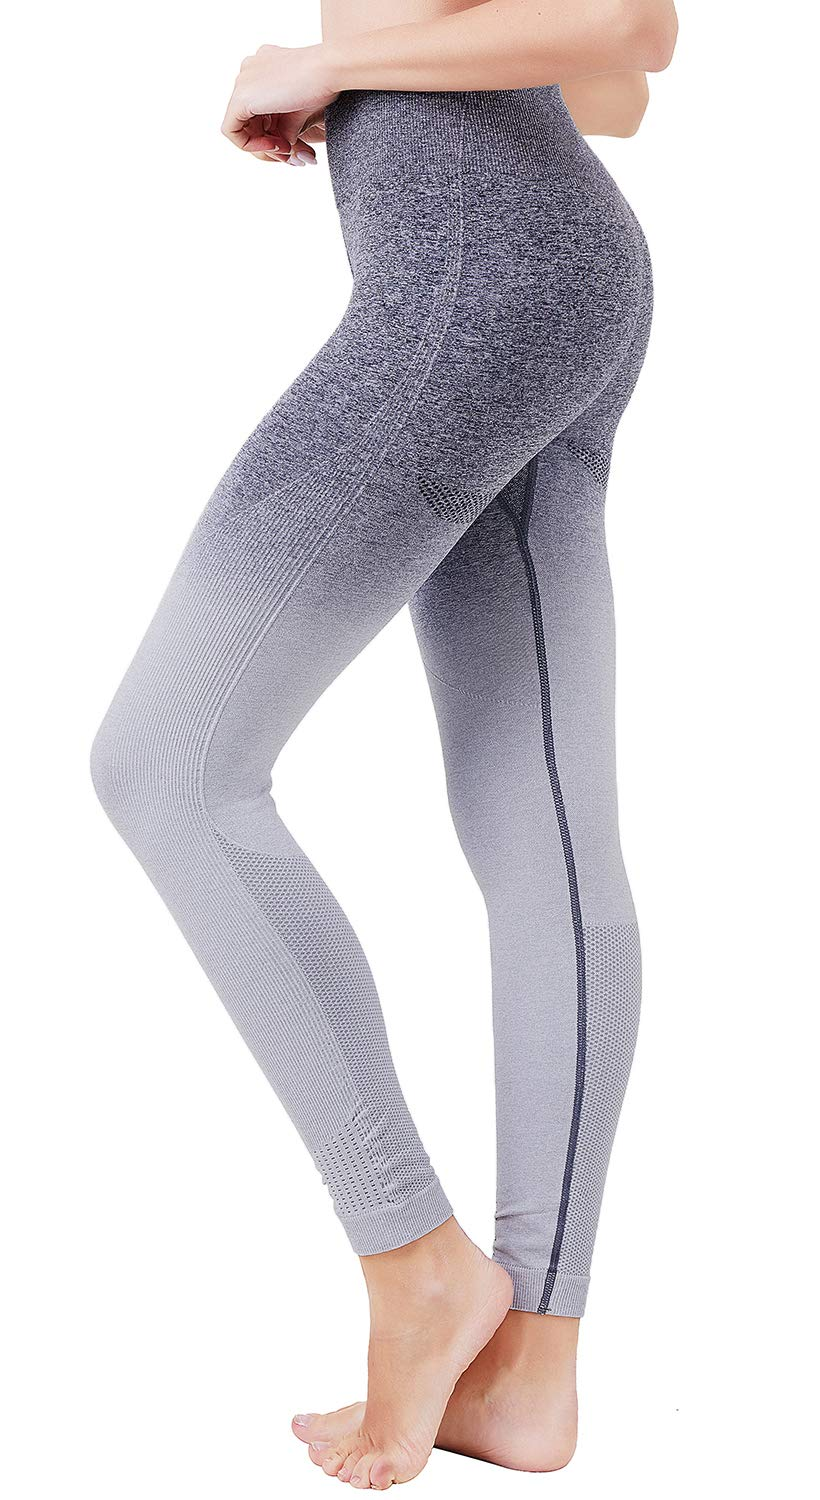 Helisopus Women's Ombre Seamless Leggings High Waisted Workout Pants Active Running Tights